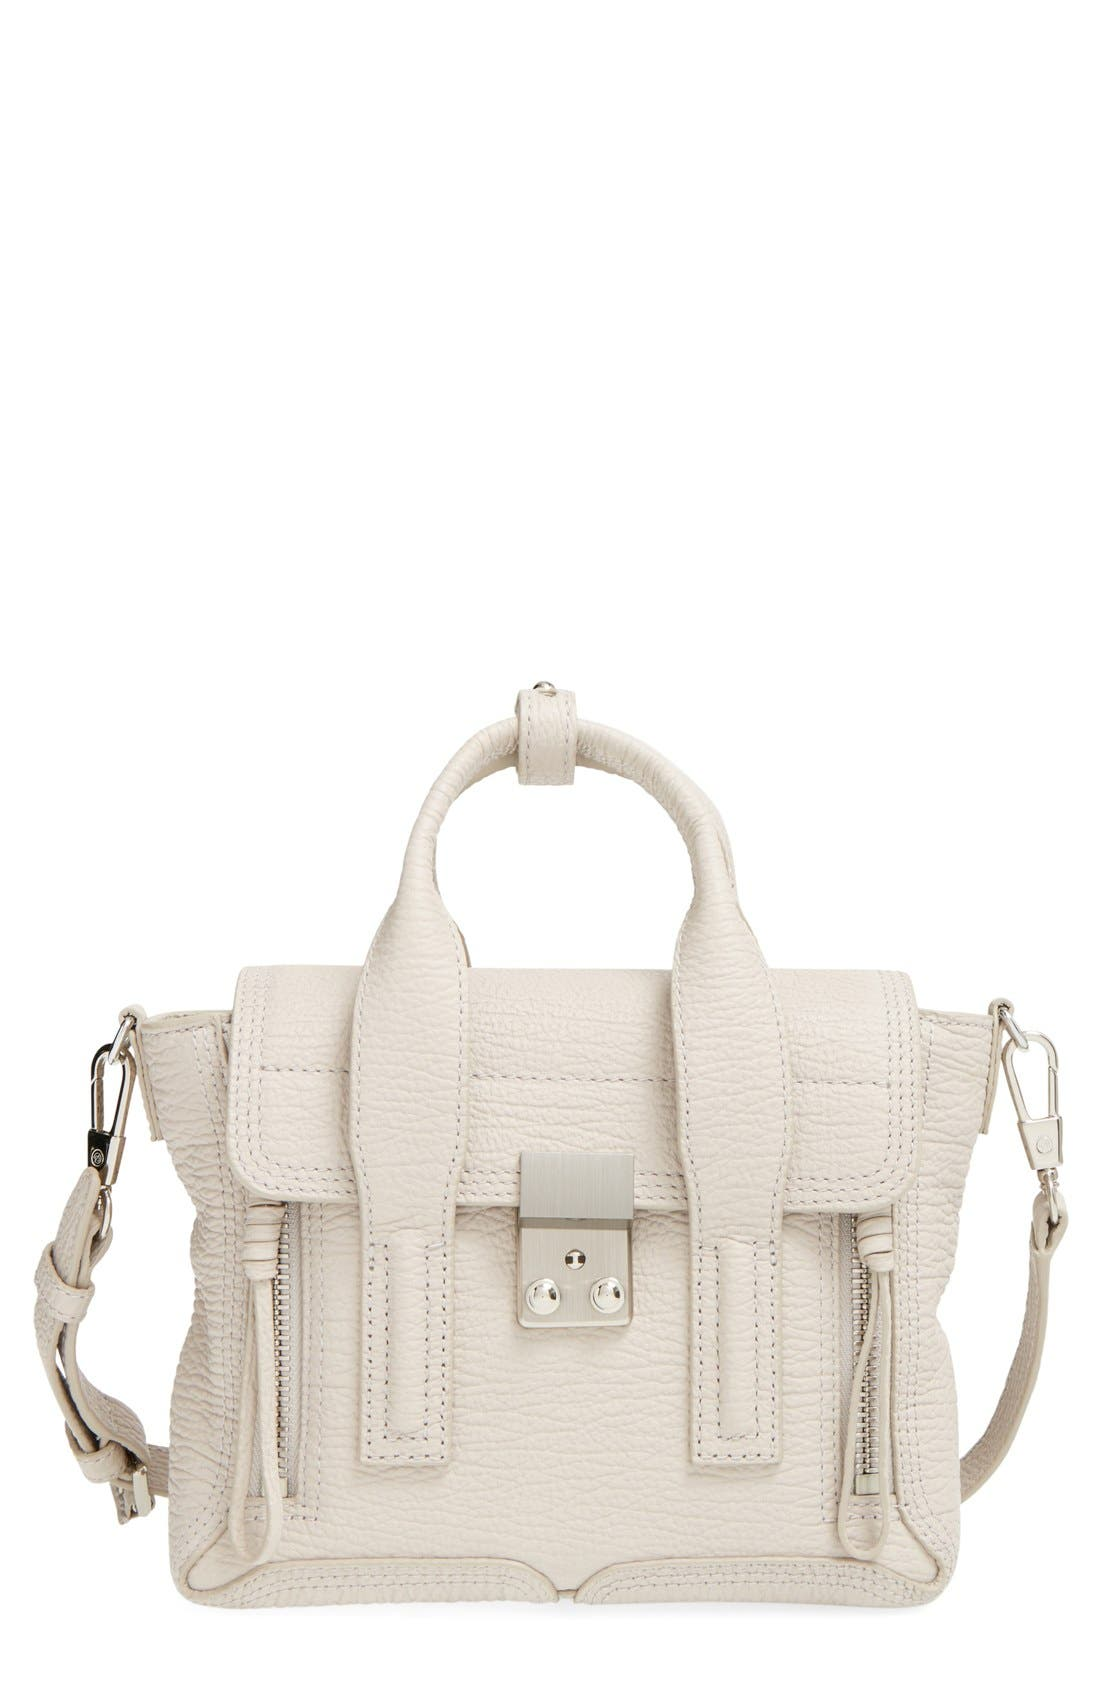 3.1 PHILLIP LIM 'Mini Pashli' Leather Satchel